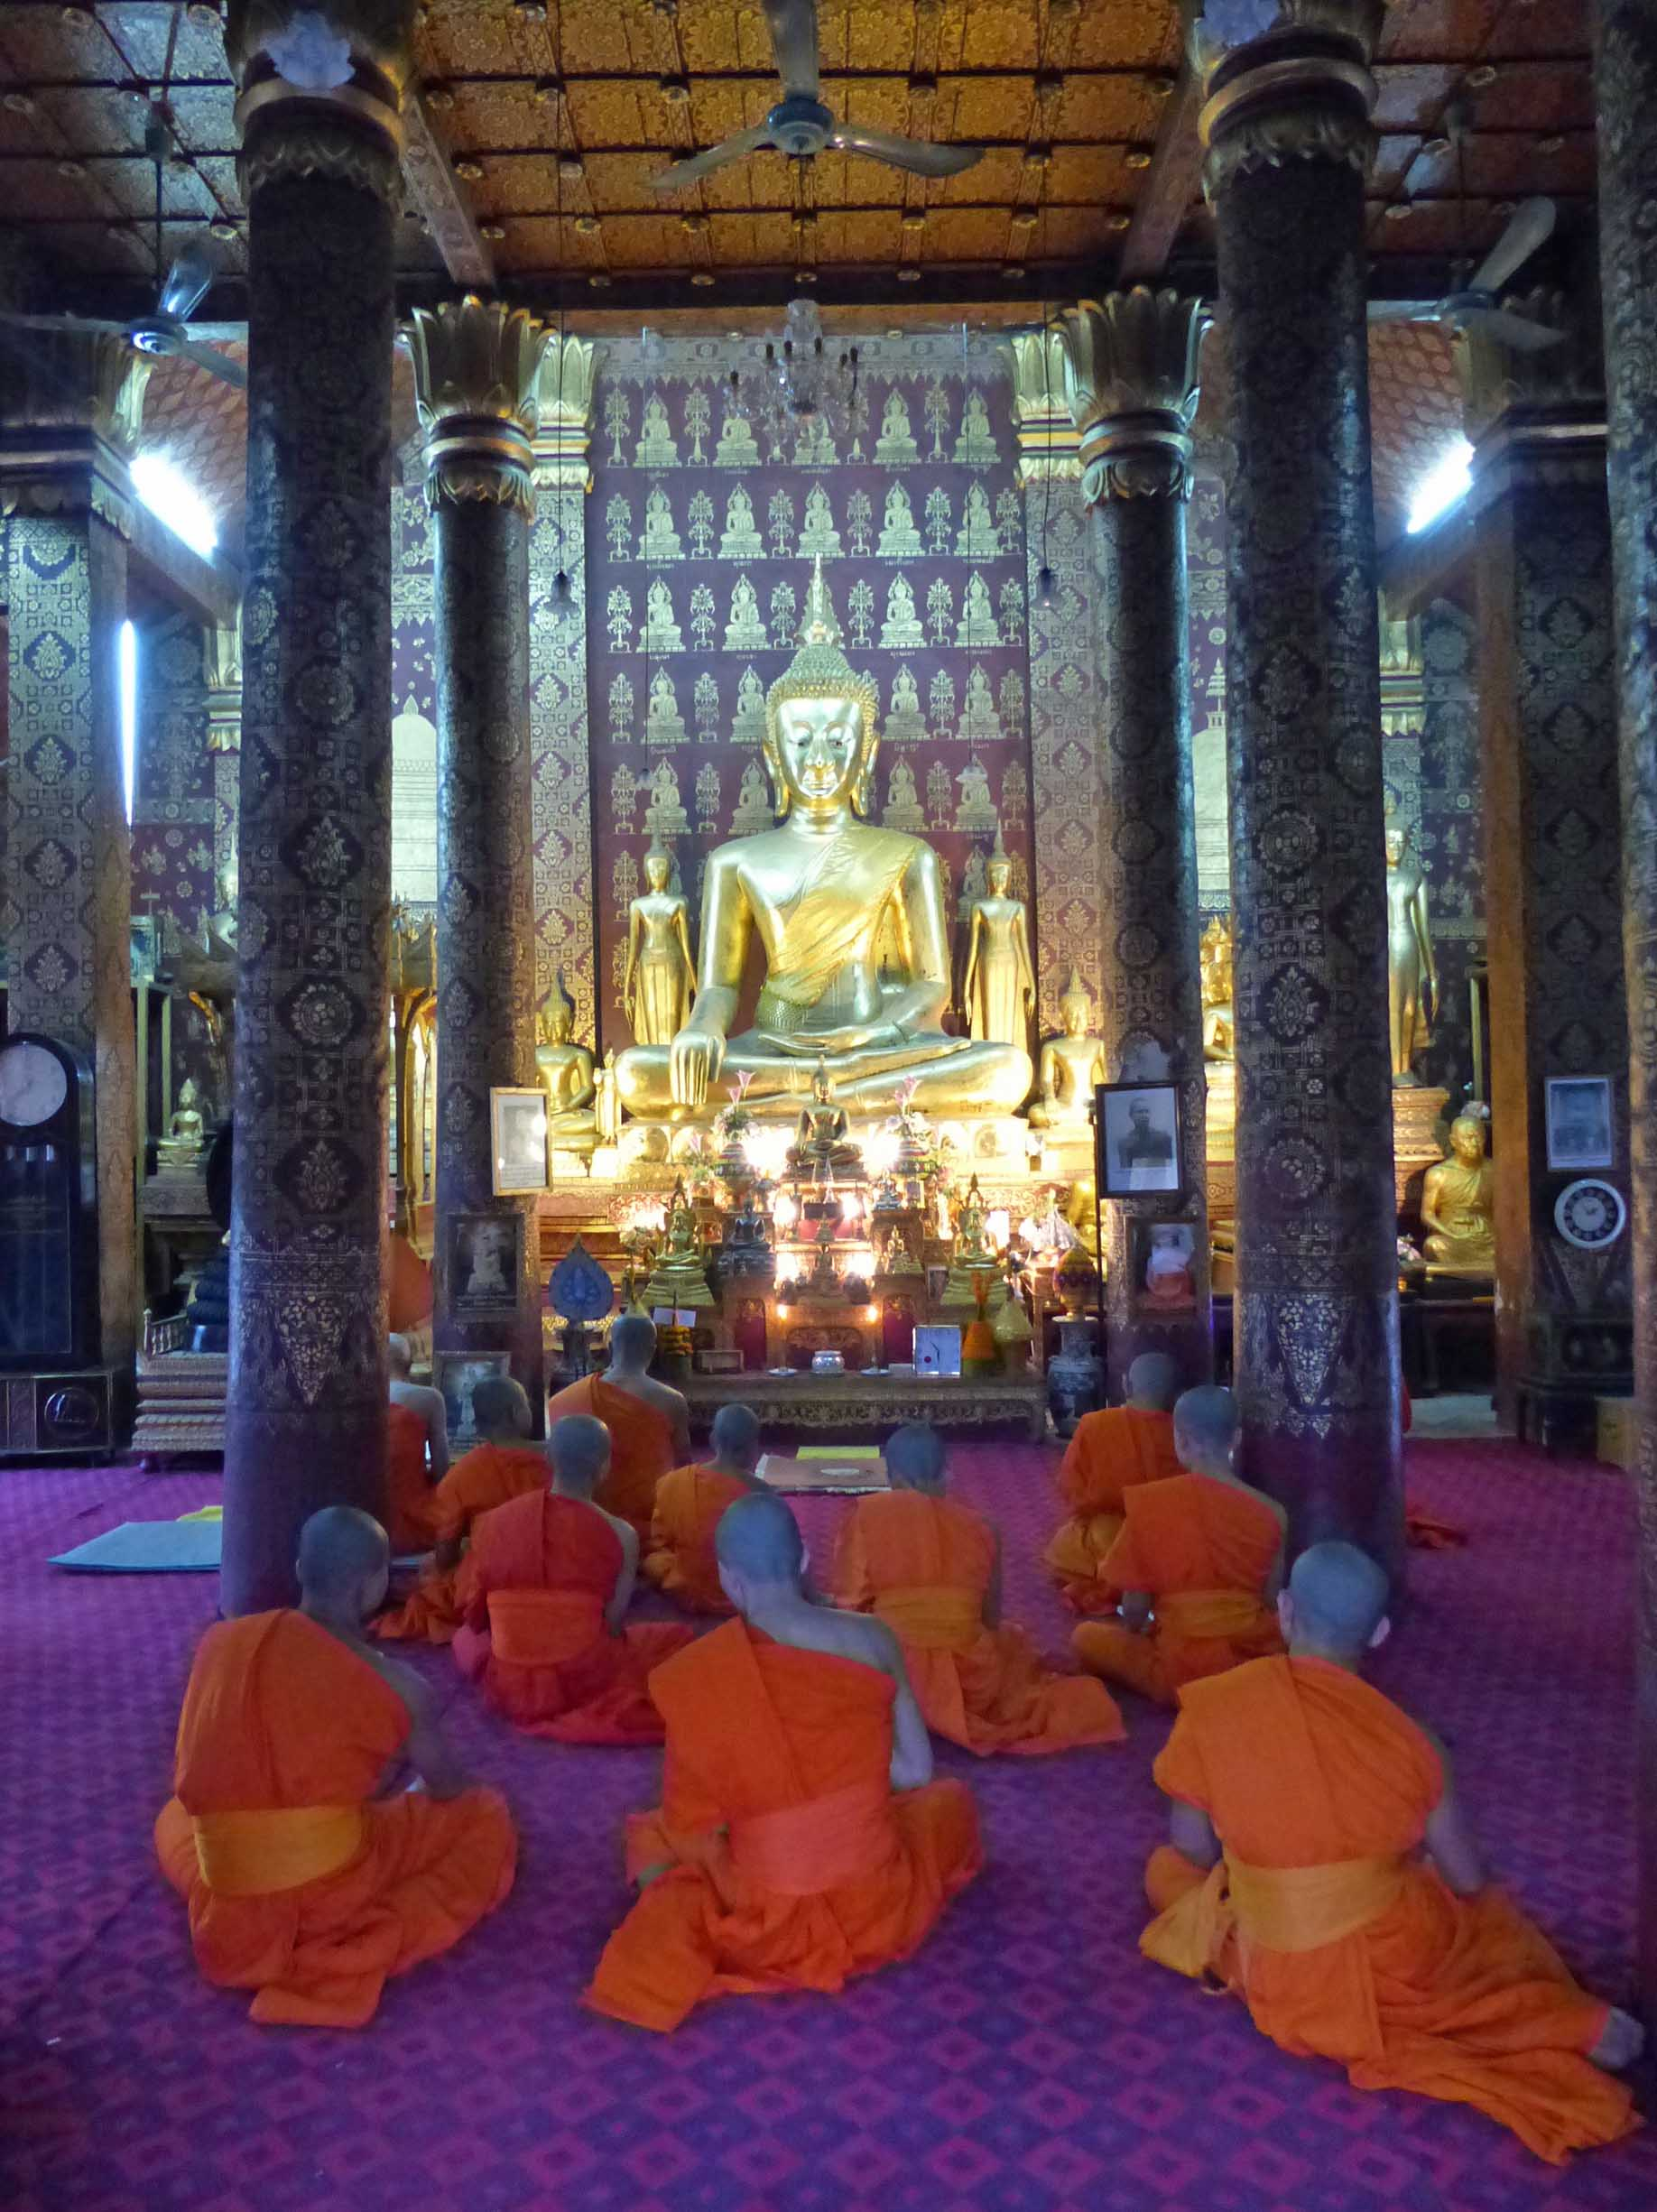 Young men in orange robes seated on the floor of a temple with large golden Buddha